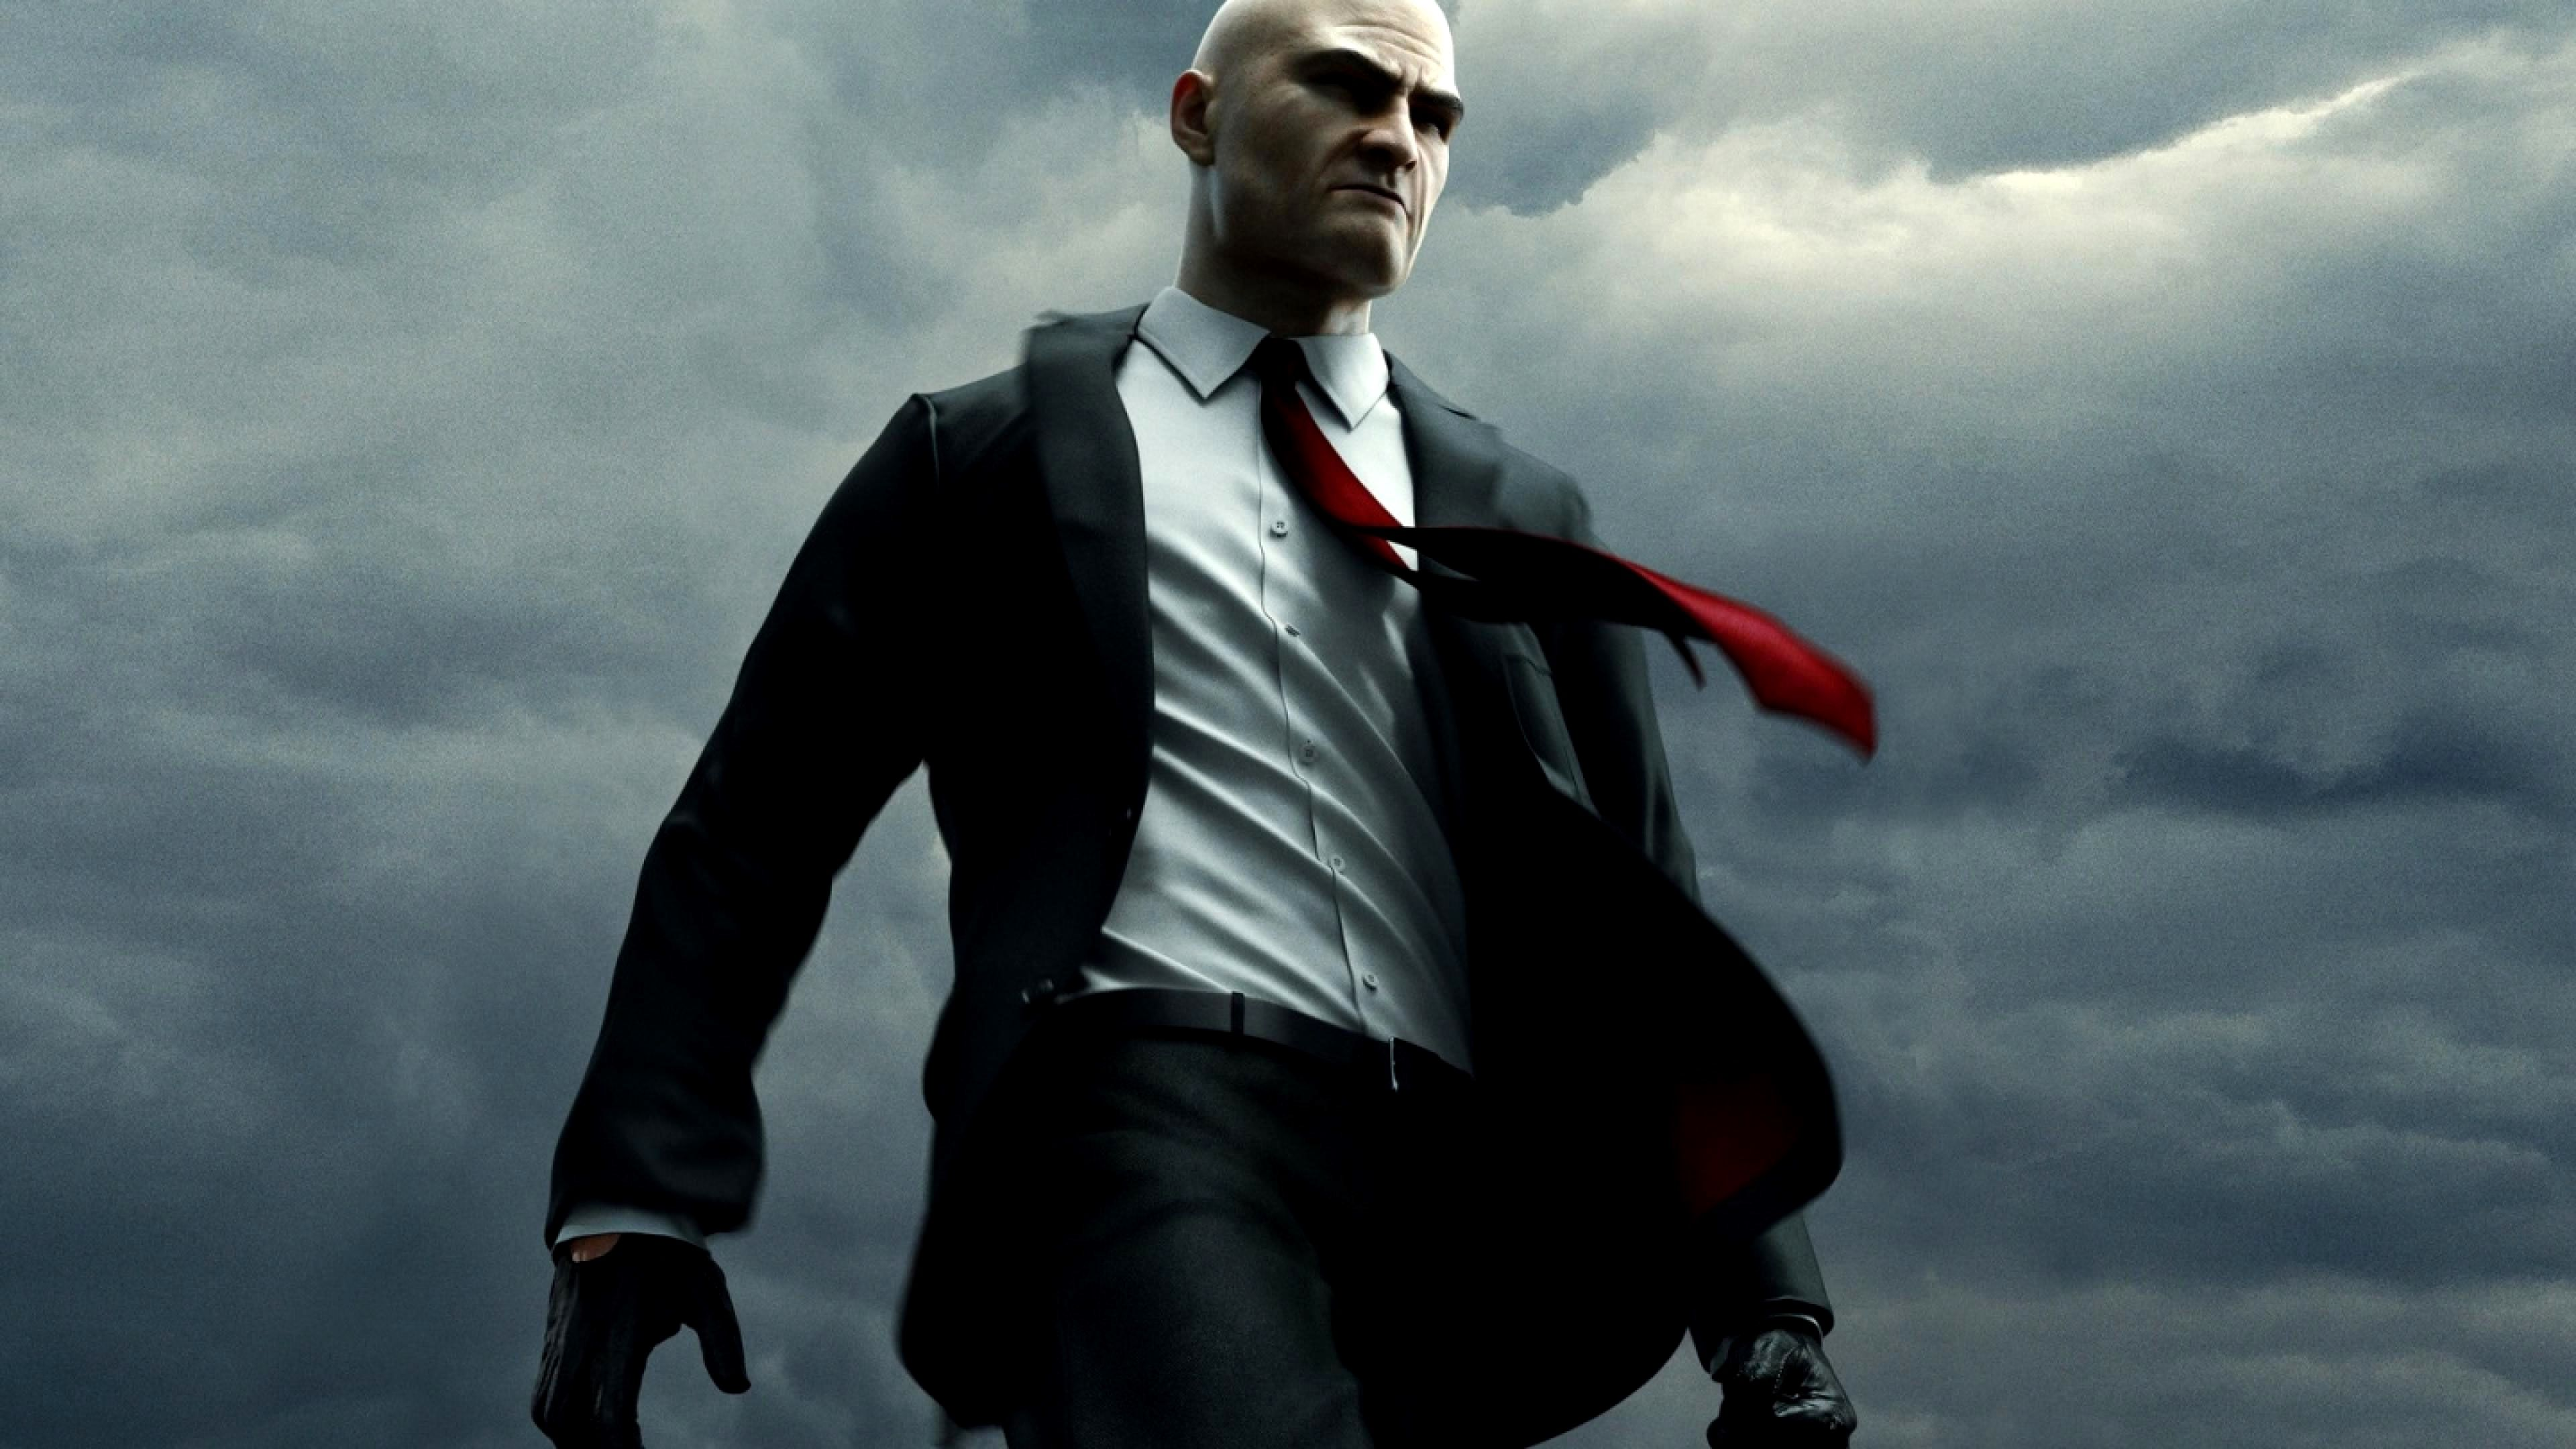 Hitman 3 2021 Wallpaper For Iphone And 4k Gaming Wallpapers For Laptop Download Now For Free Hitman3 Games Ps5 In 2020 Hitman Hitman Agent 47 Best Gaming Wallpapers